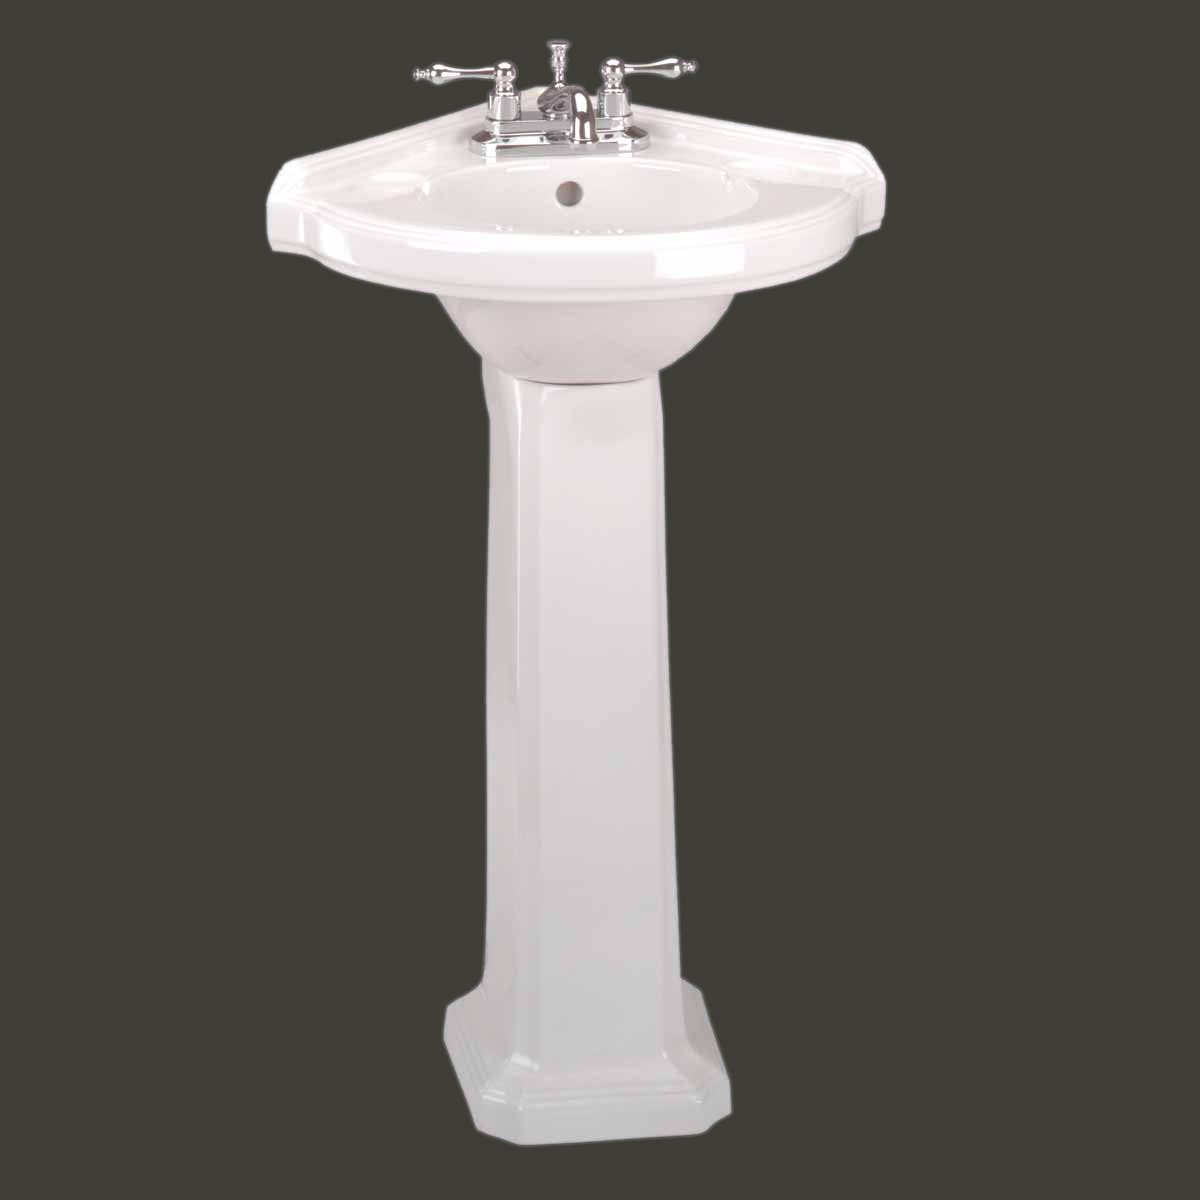 of ideas pedestal bathroom small to great image stylid install homes sink